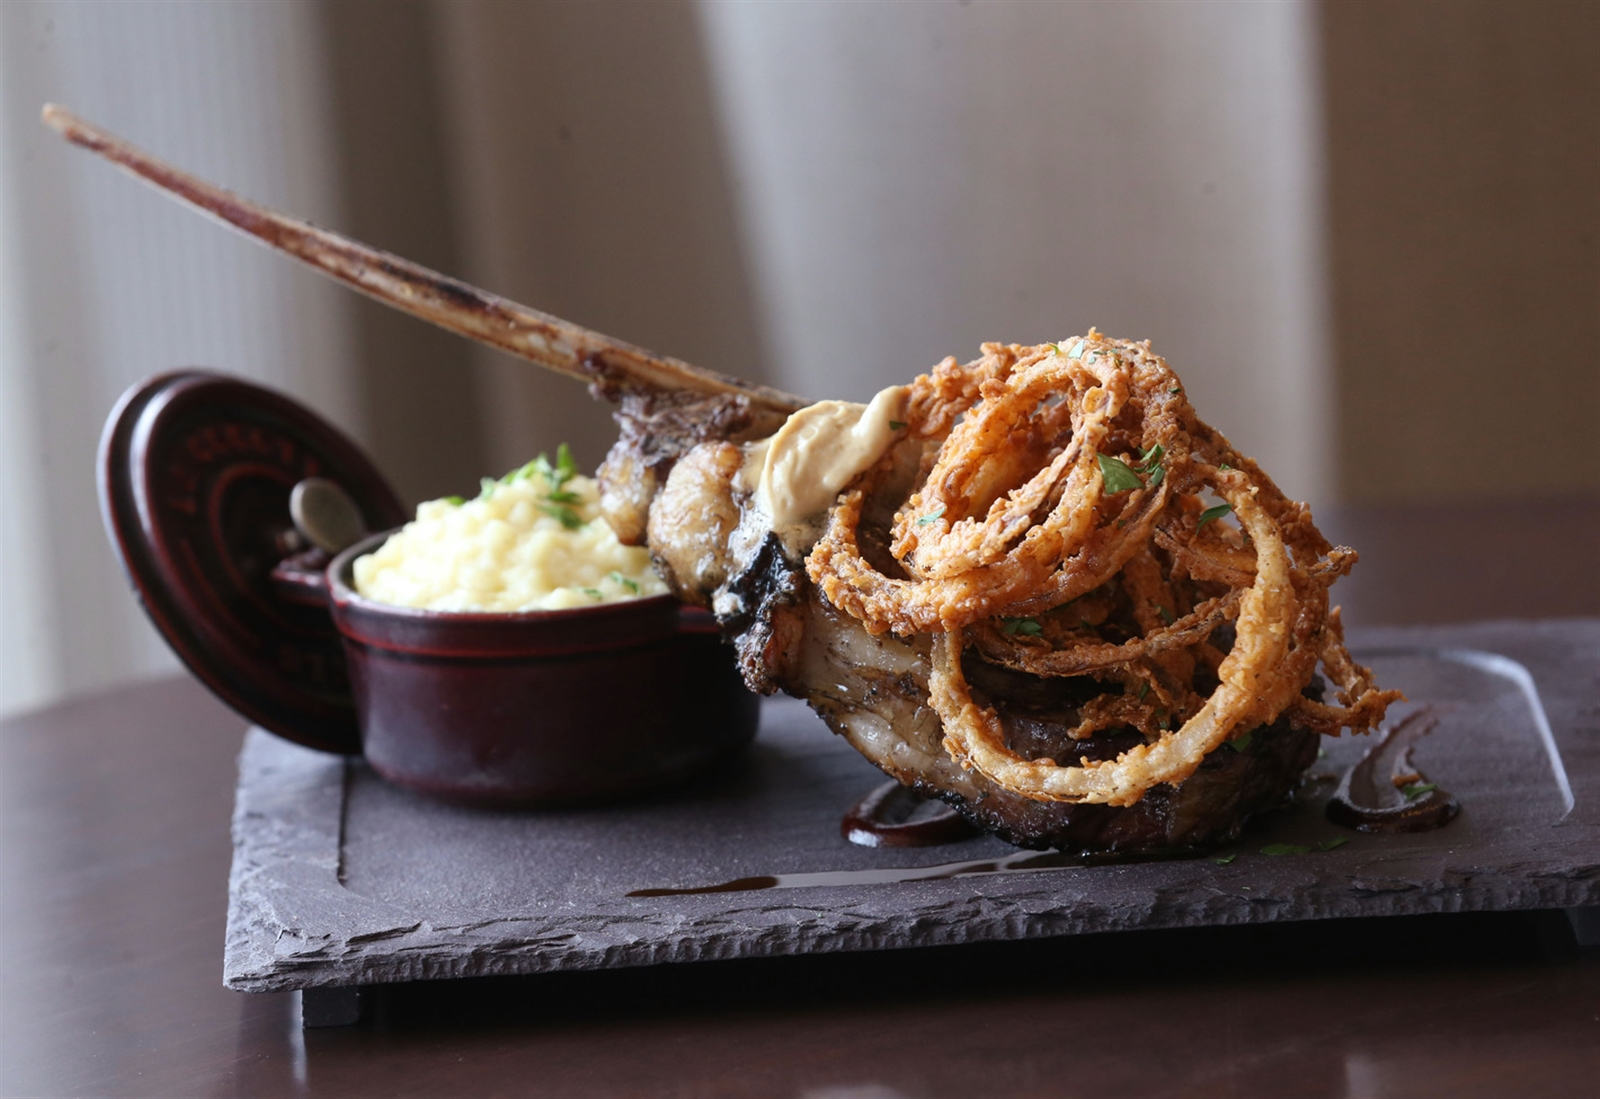 The tomahawk steak is a 22-ounce center cut with truffled whipped potato, buttermilk onion straws, a Bordeaux and cherry reduction and foie butter.